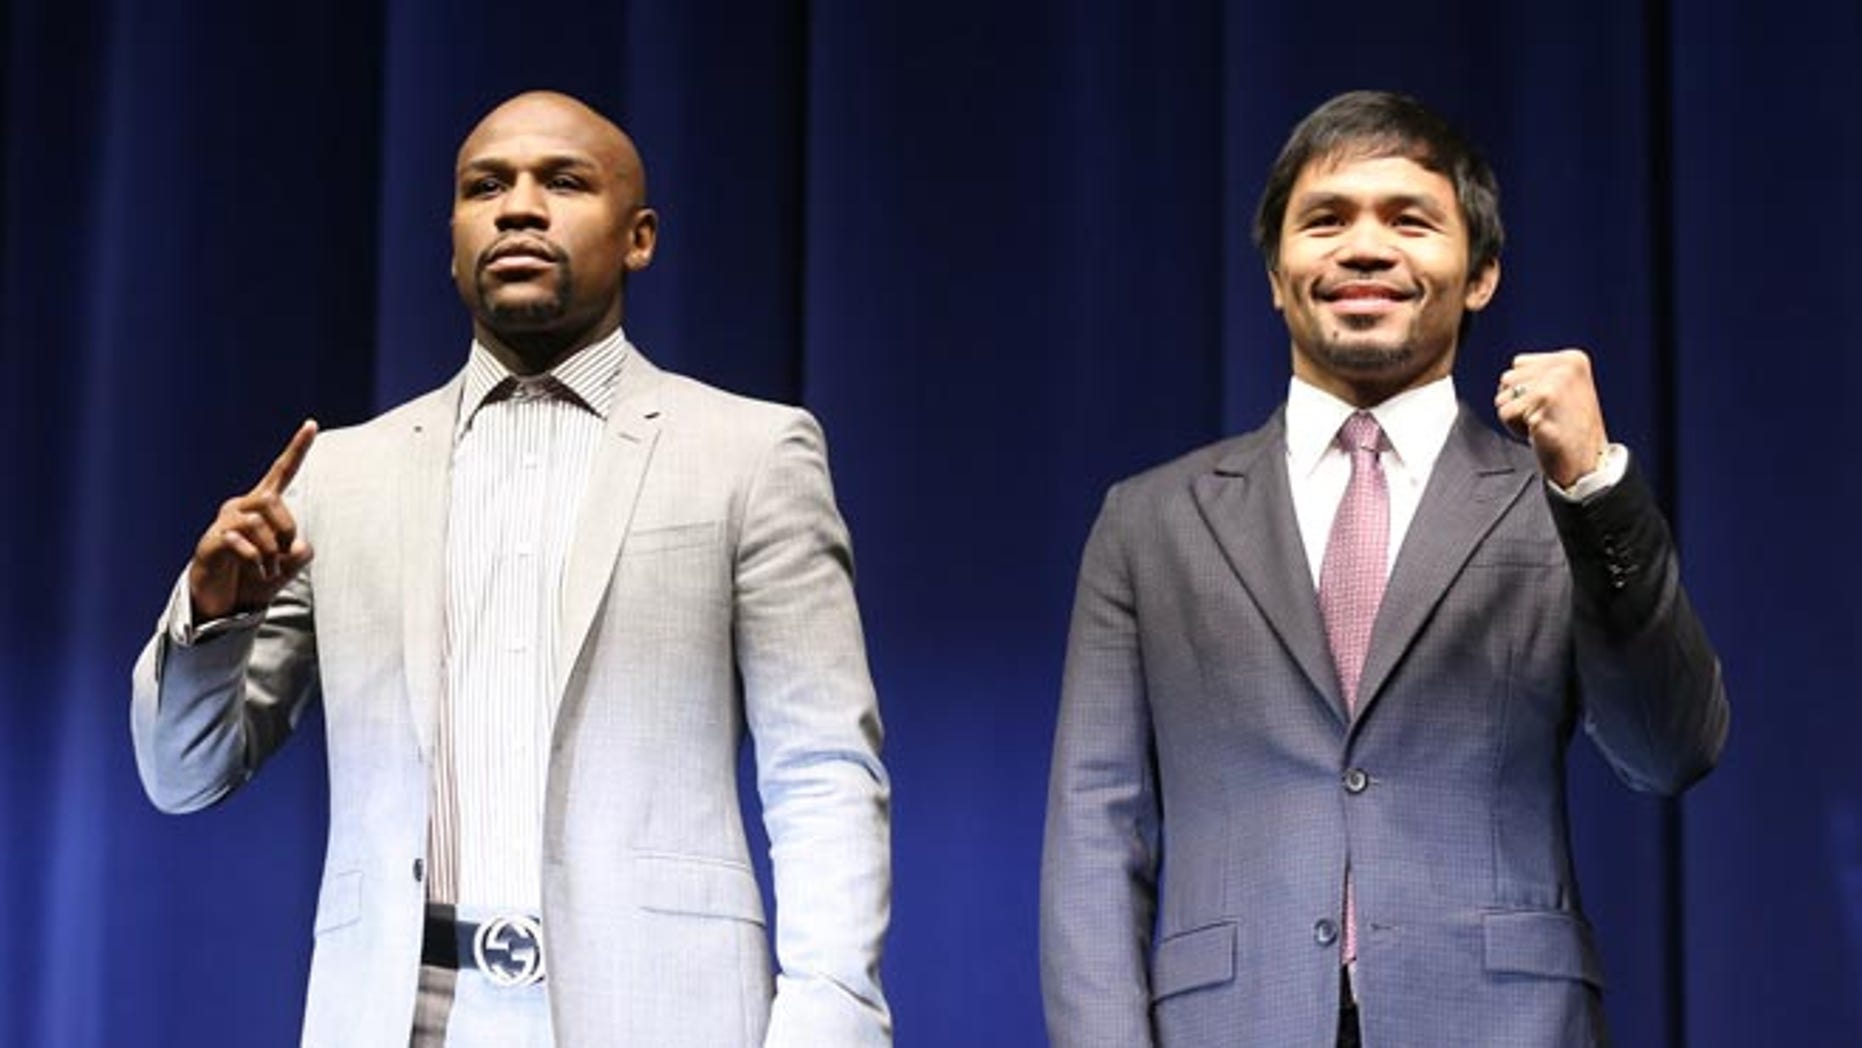 LOS ANGELES, CA - MARCH 11:  Floyd Mayweather (L) and Manny Pacquiao pose together at the start of their Press Conference promoting their upcoming fight on March 11, 2015 in Los Angeles, California.  (Photo by Stephen Dunn/Getty Images)